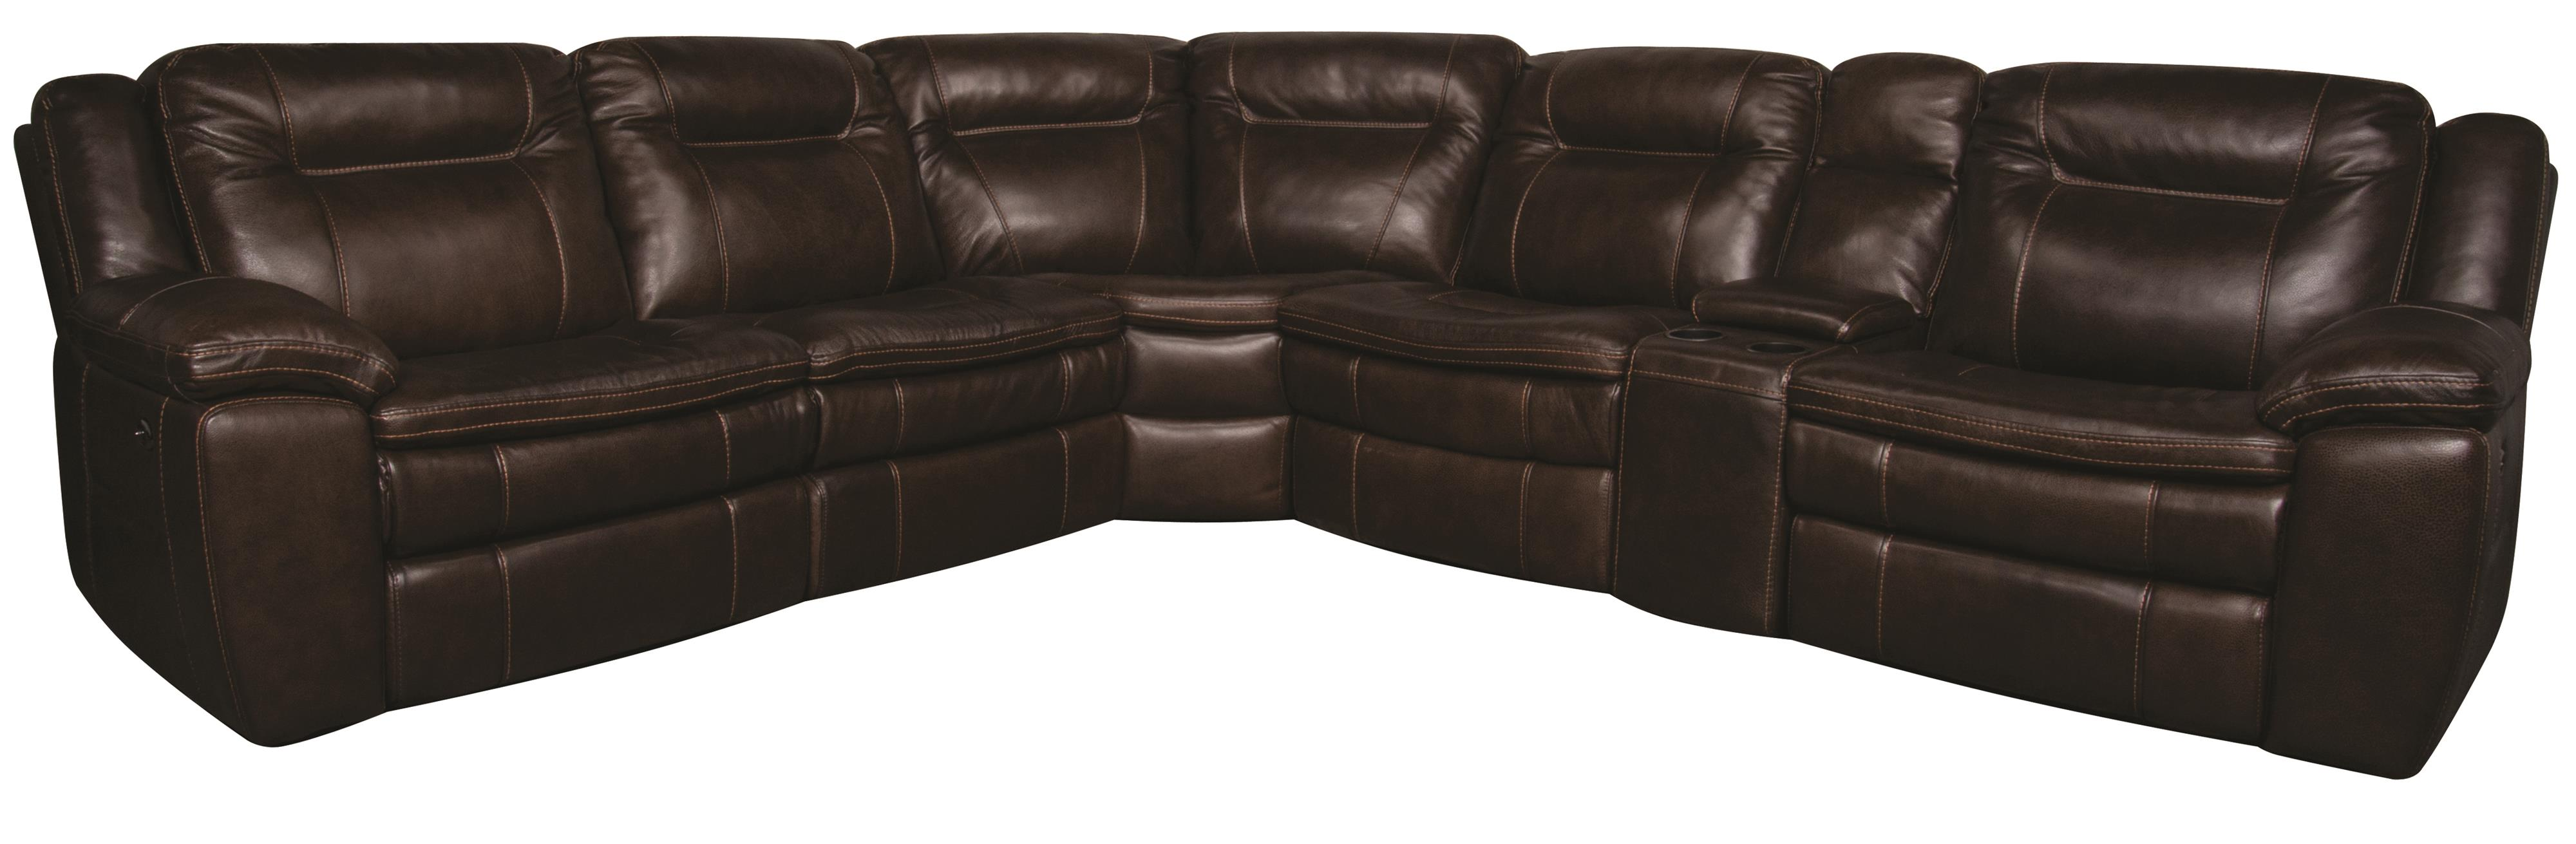 Morris Home Furnishings Heath Heath 6-Piece PWR Leather-Match* Sectional - Item Number: 134871657